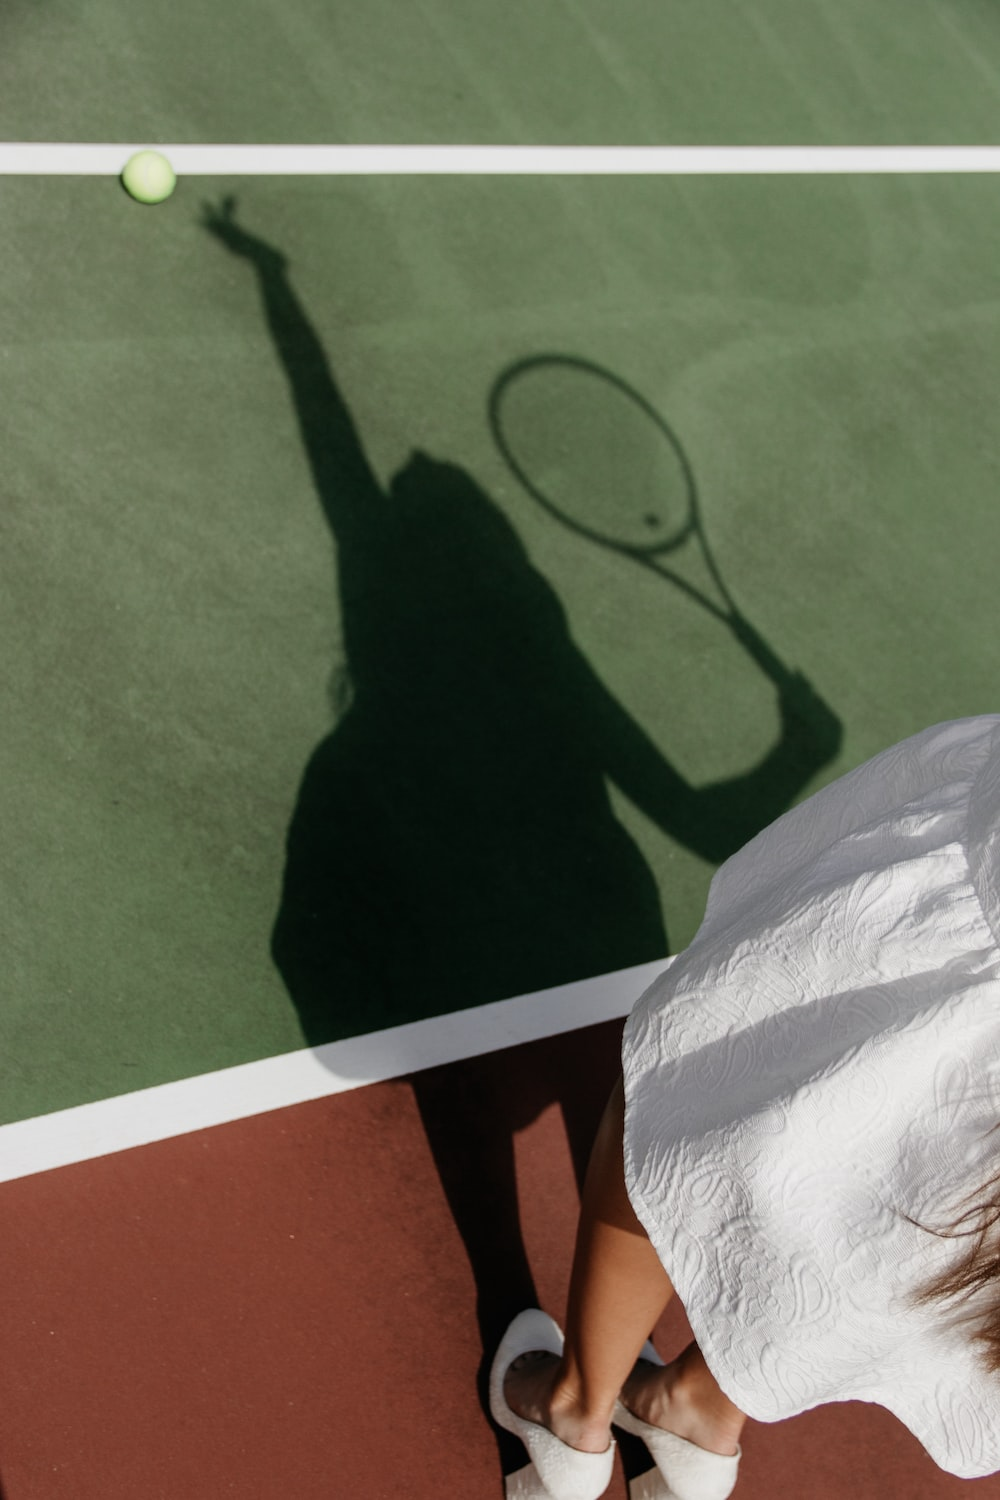 shadow of woman playing tennis on court